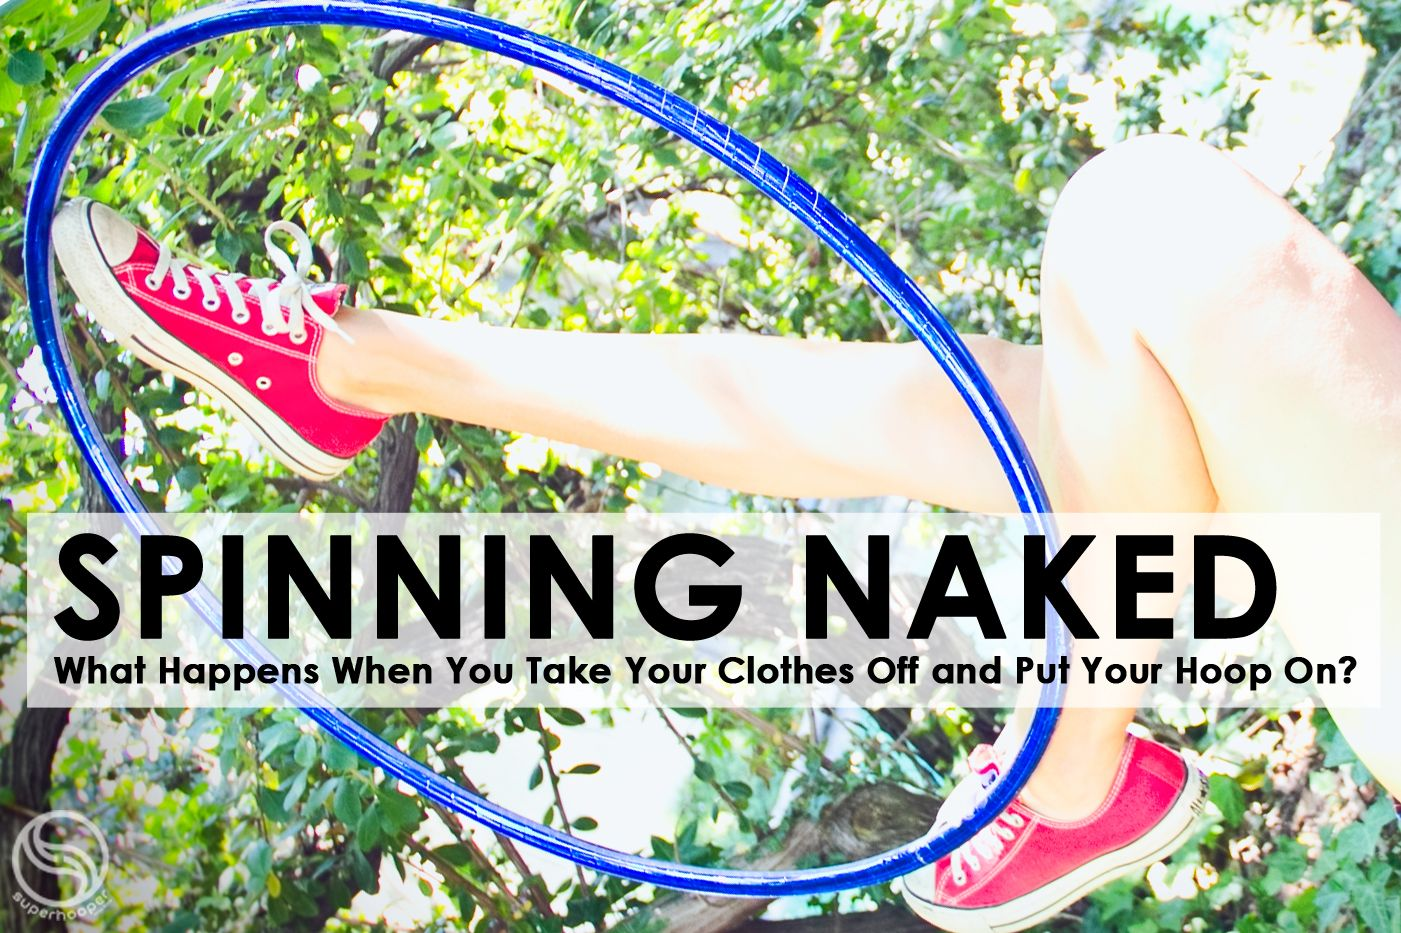 What's your take on spinning solo in the buff, if you so dare, Hooposophy readers?